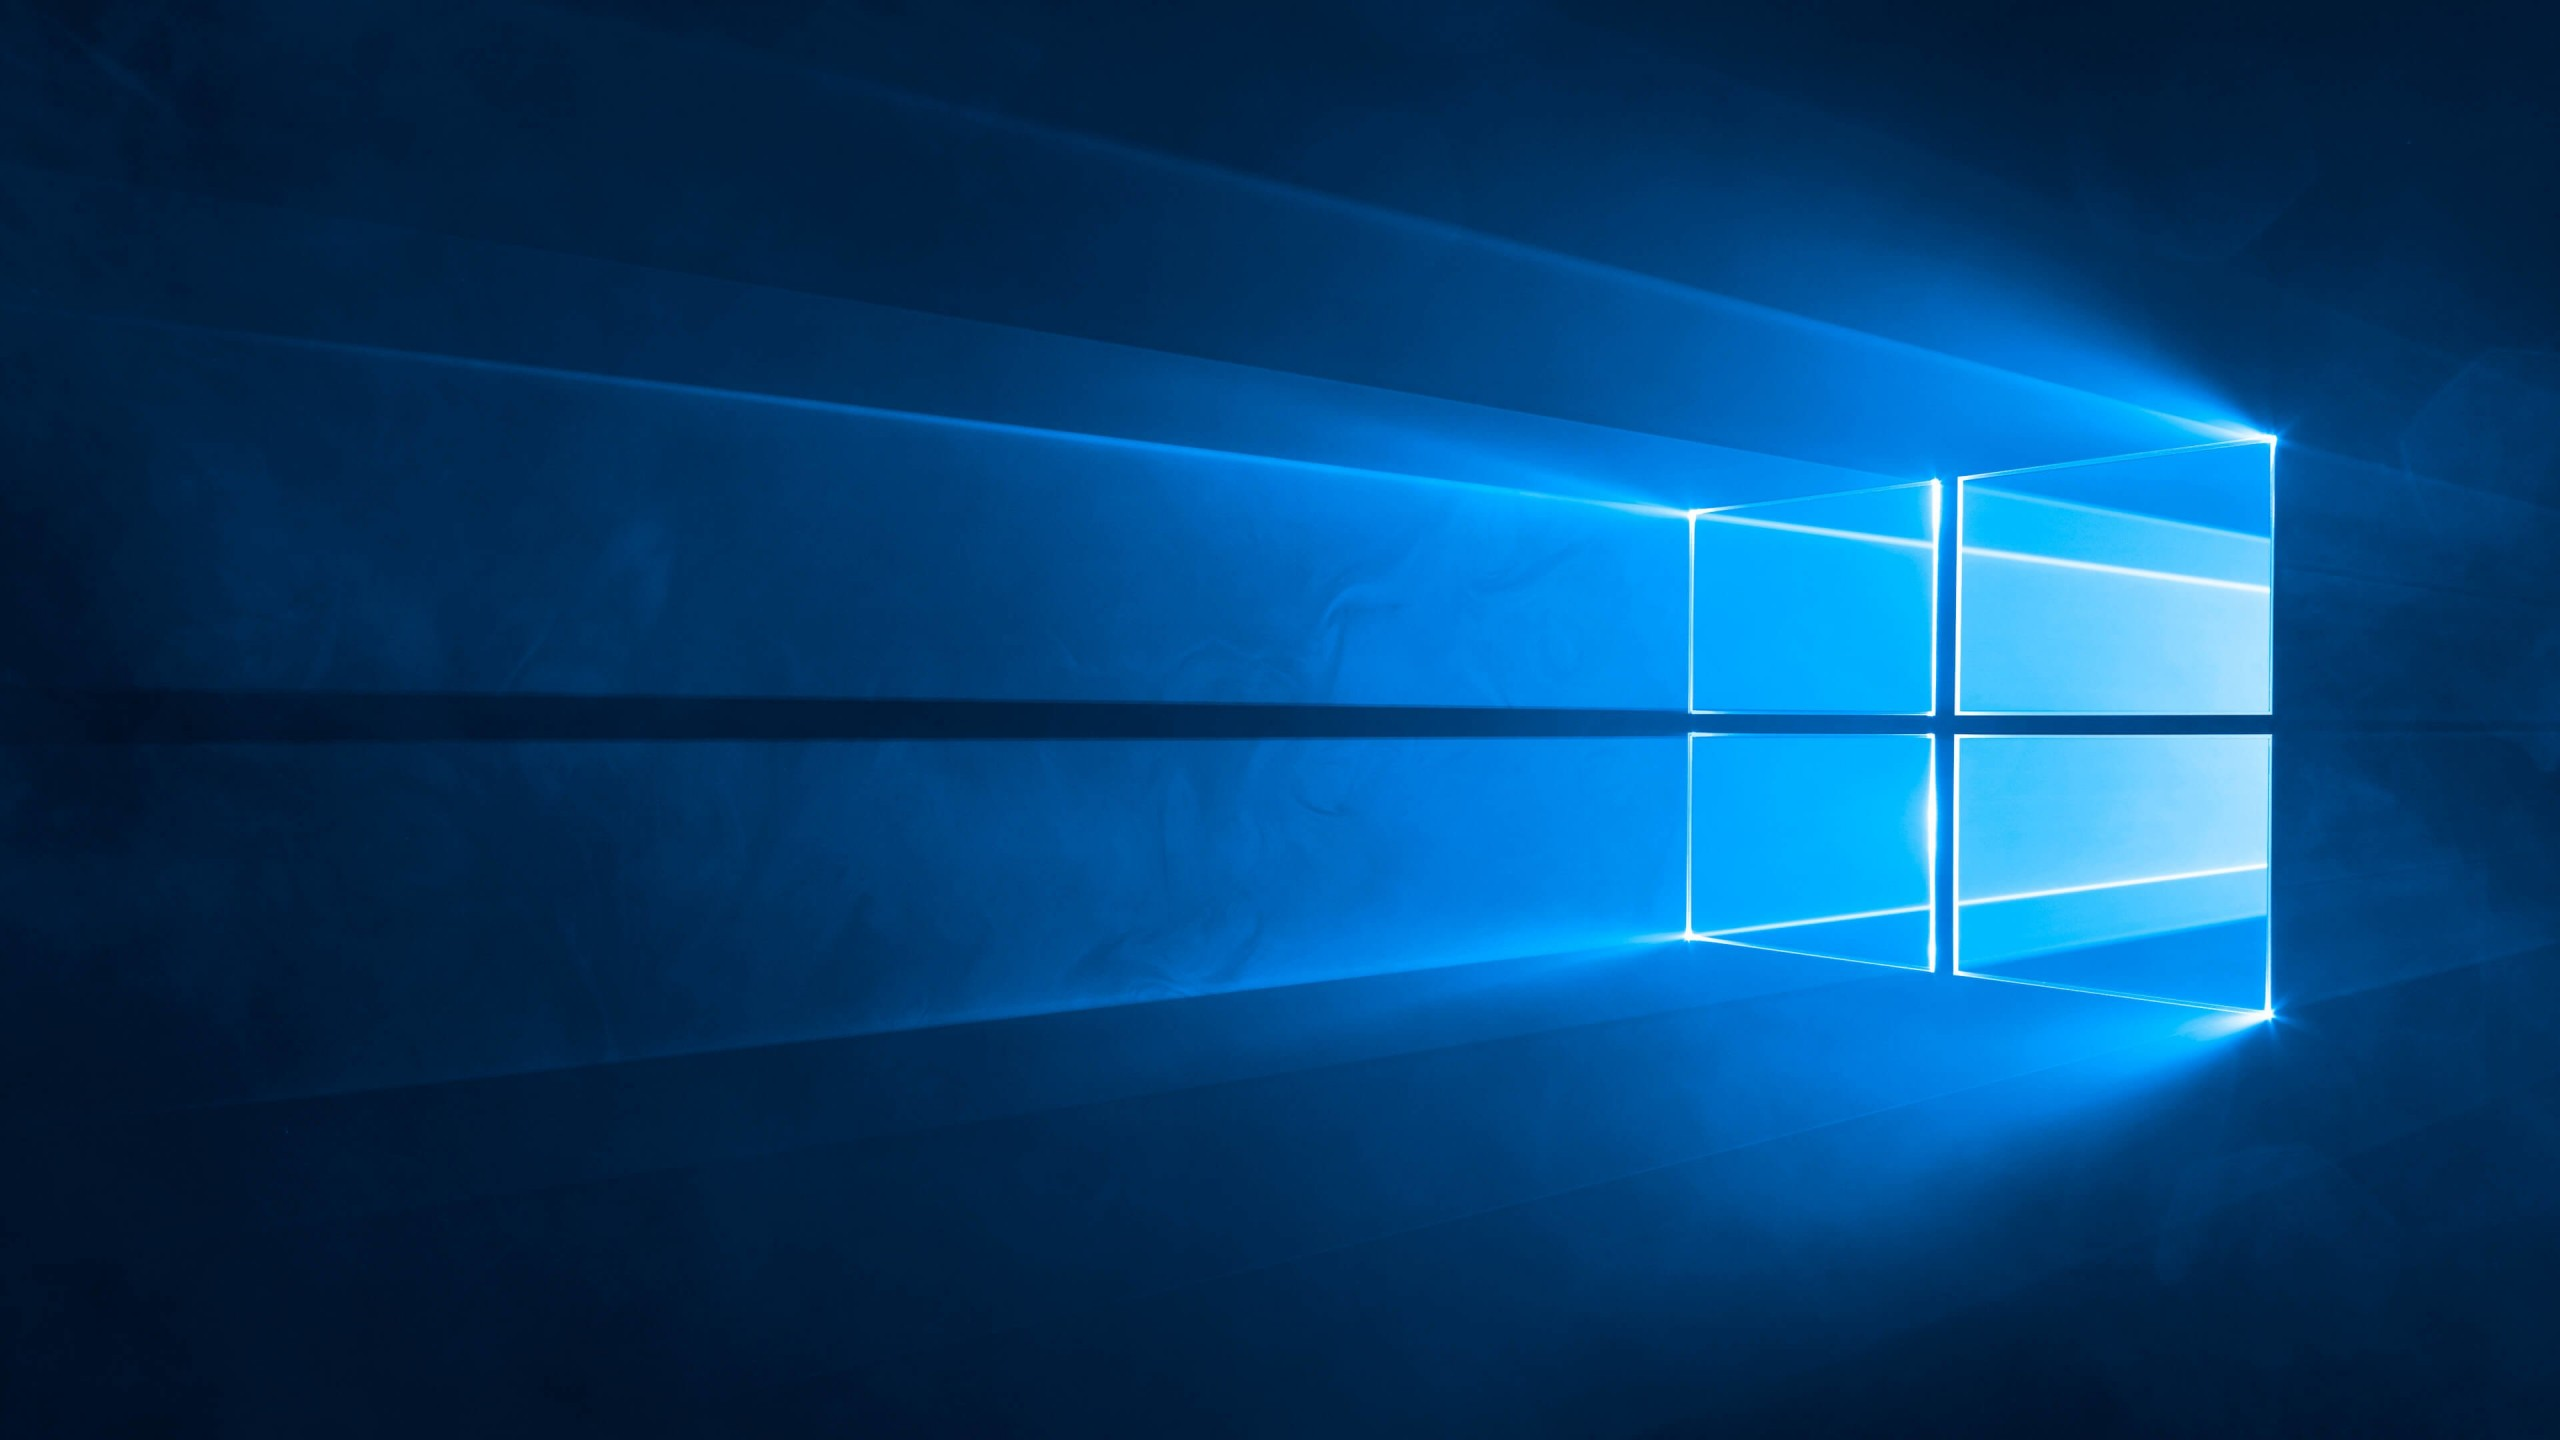 windows 10 official hd wallpaper for 2560 x 1440